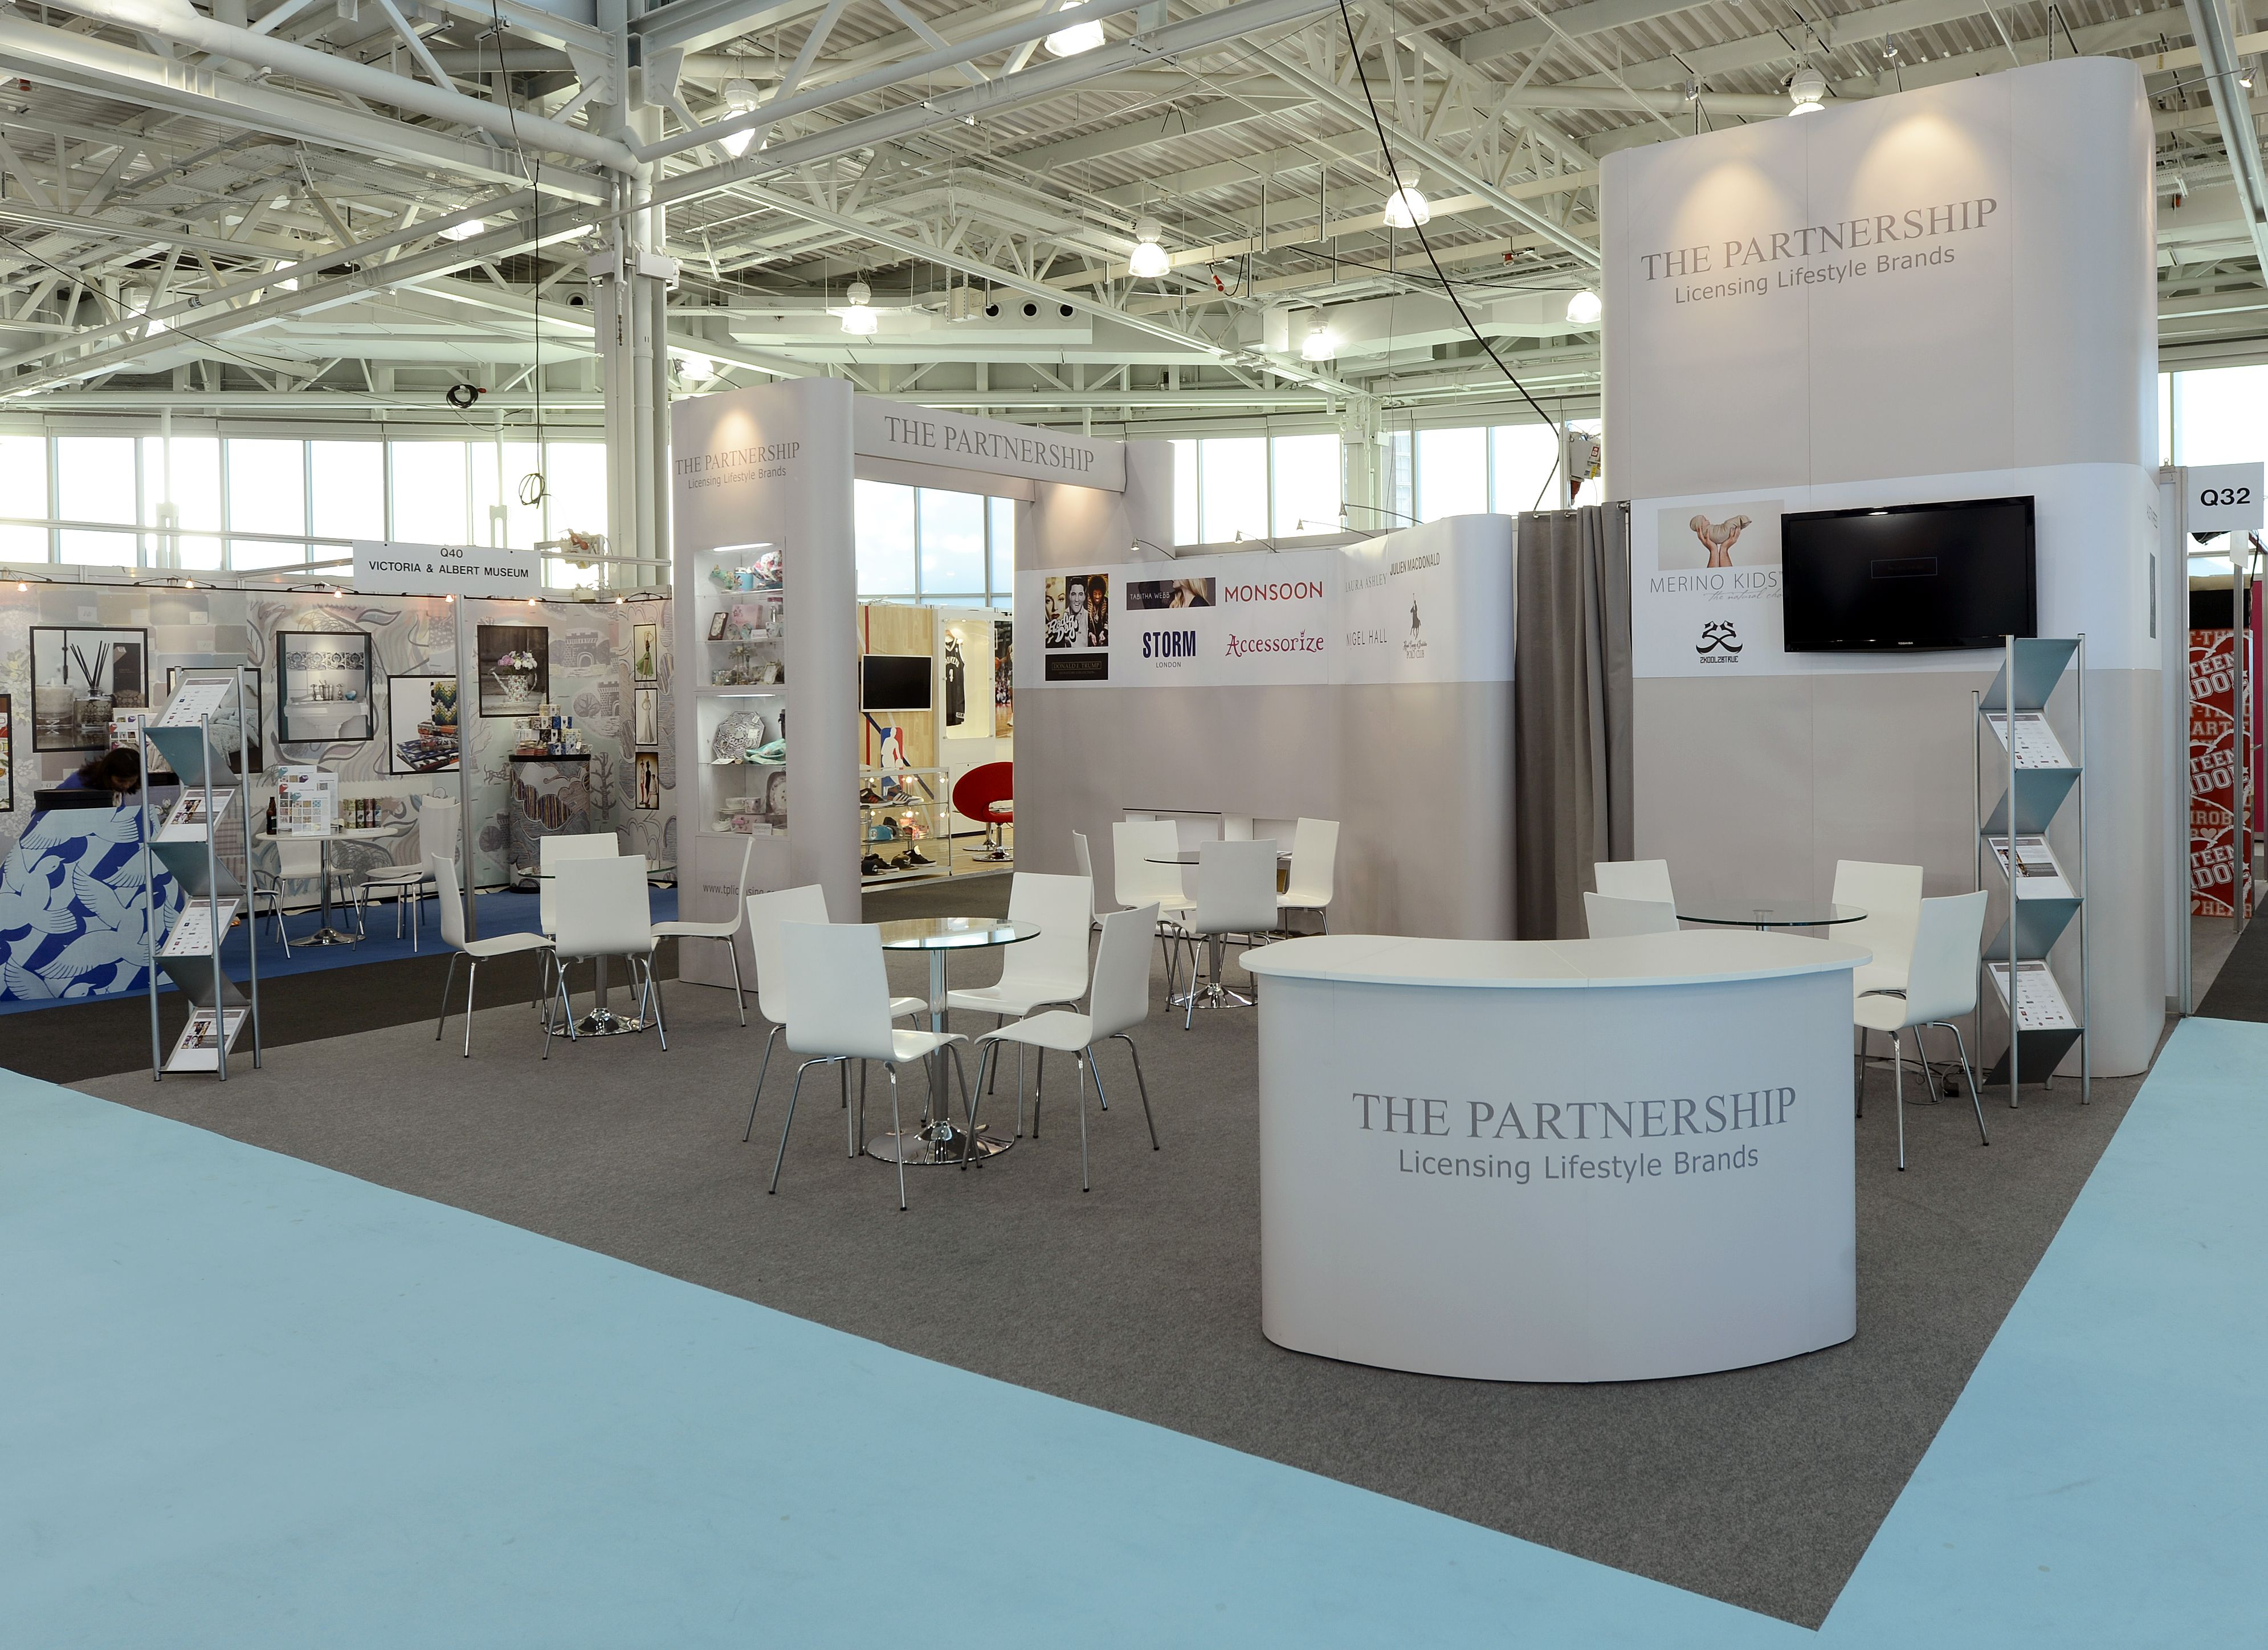 Trade Stands Olympia : Exhibition stand for the partnership at brand licensing